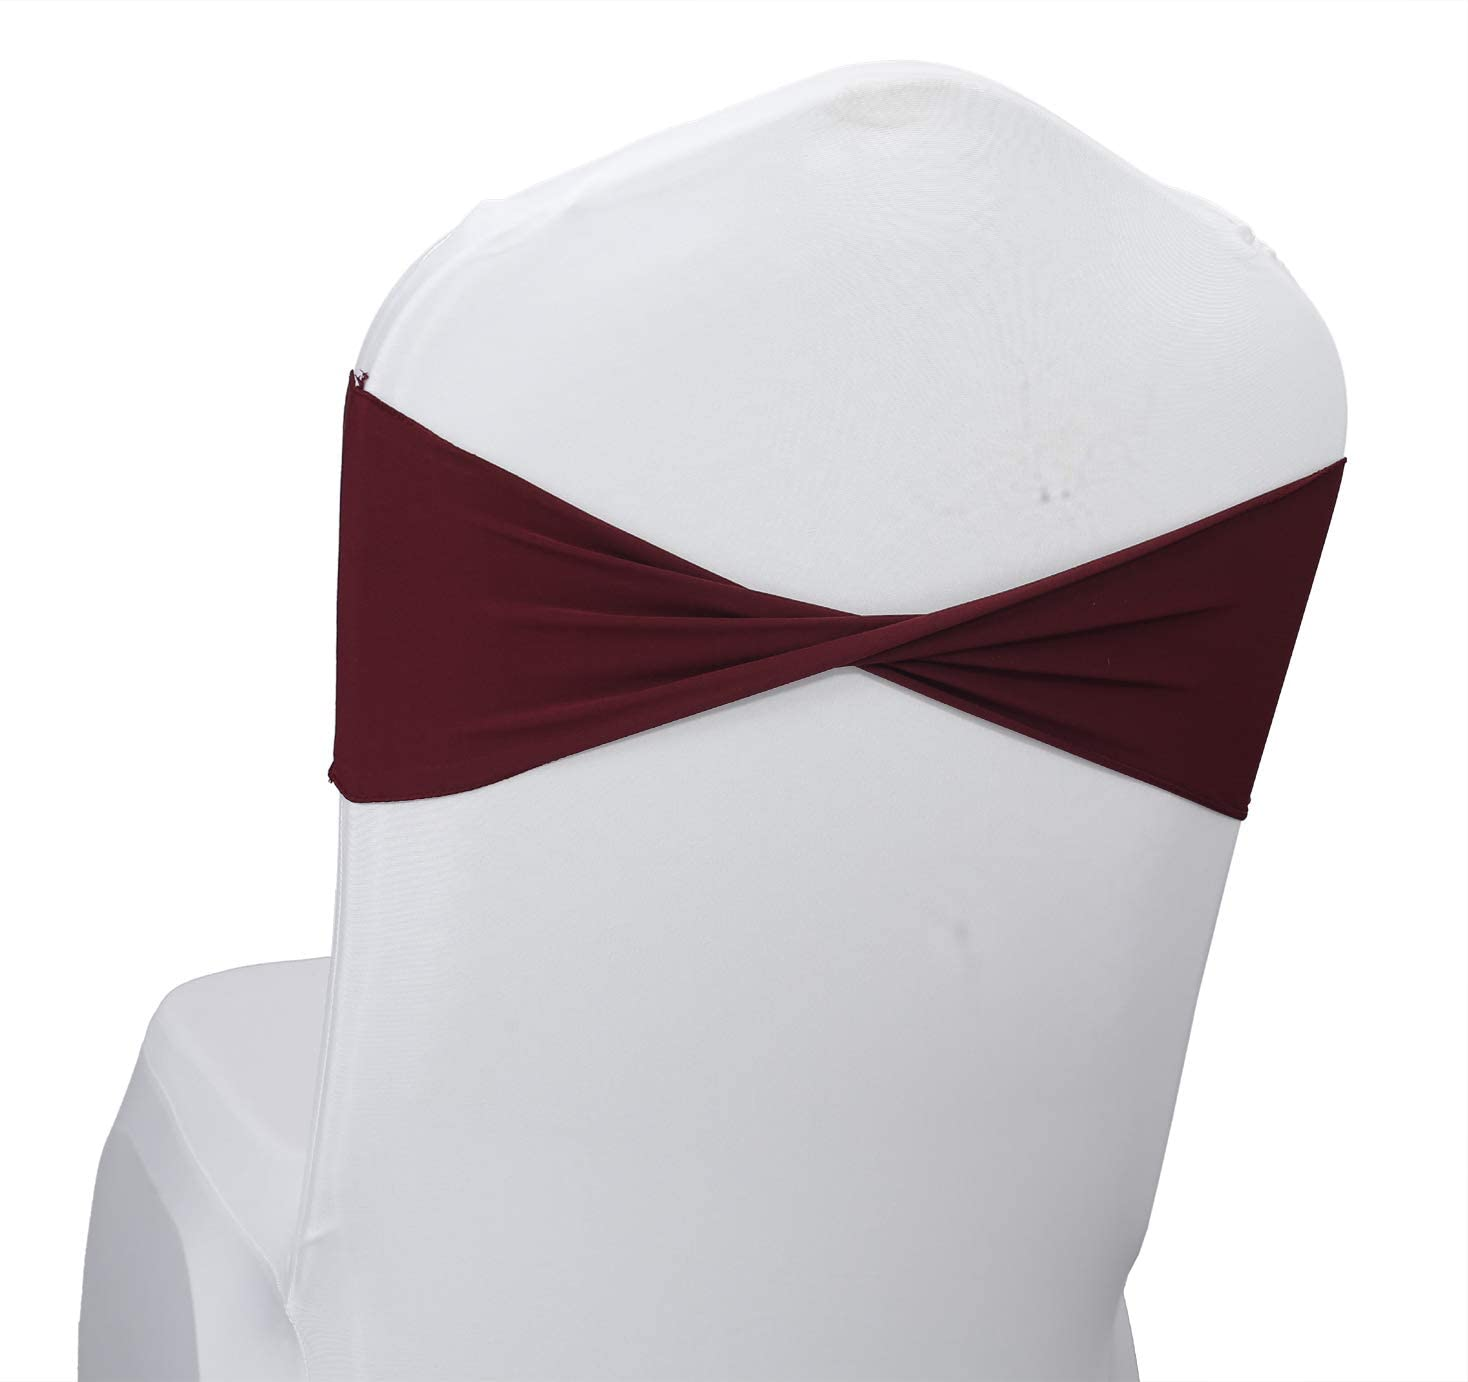 mds Pack of 200 PCS Spandex Wedding Chair Bands Sashes Bow Tie for Wedding Decorations - Burgundy